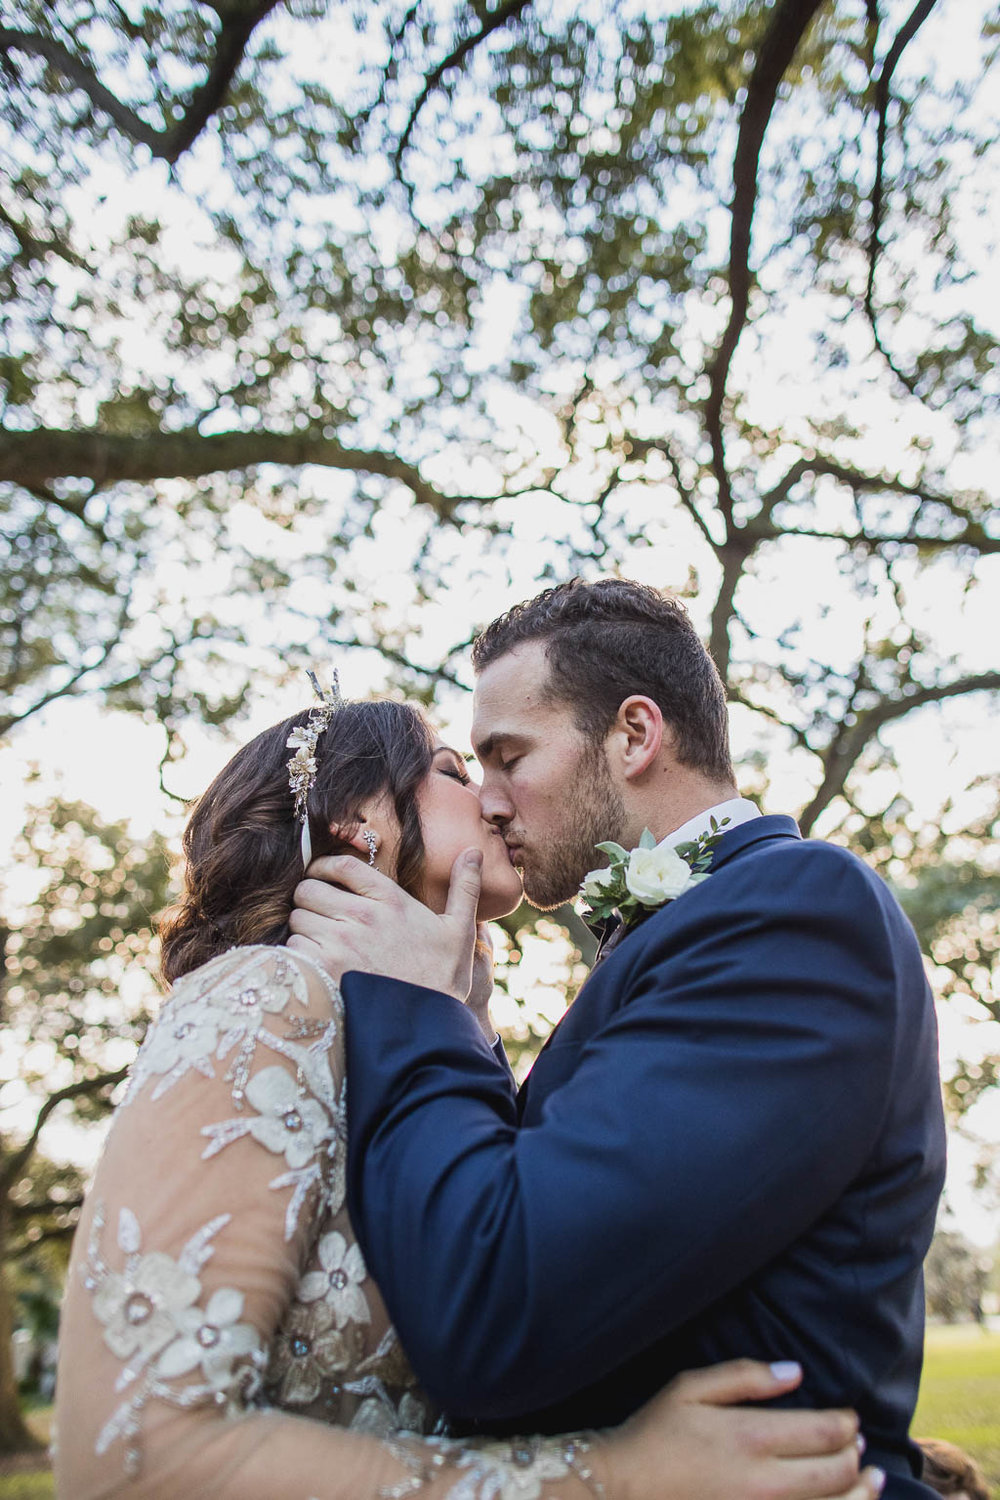 New Orleans Wedding Videographer - Bride Film